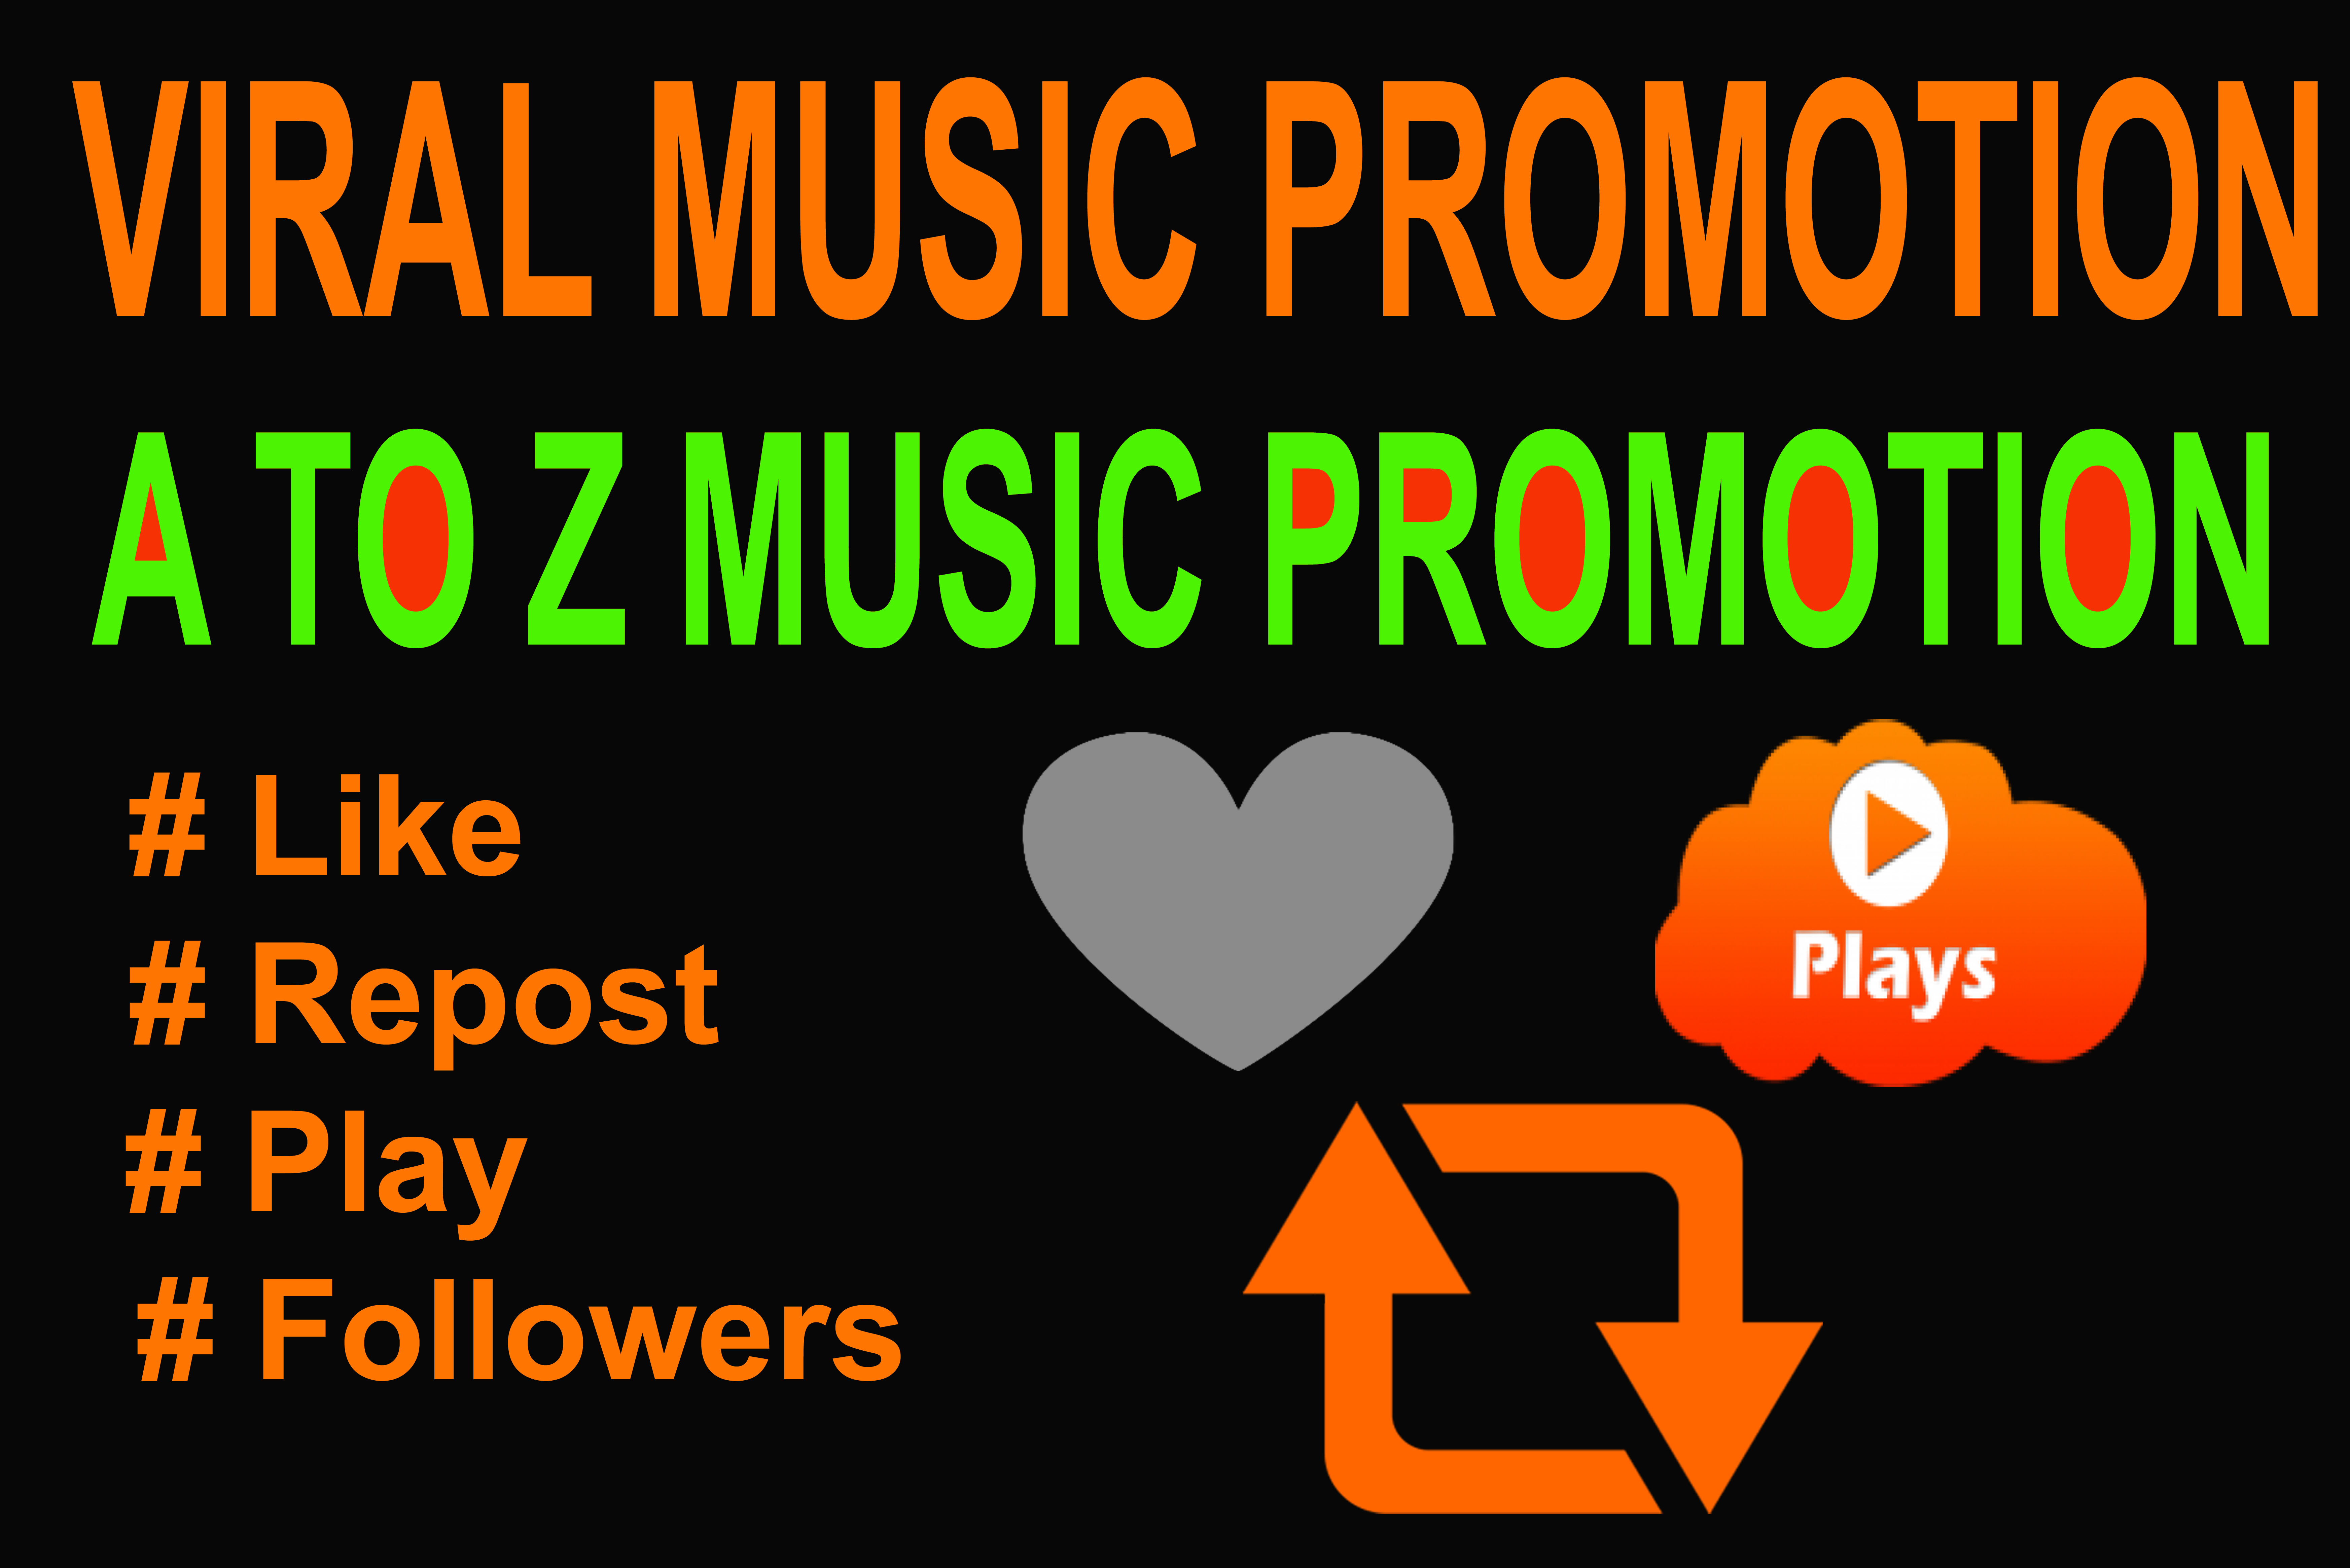 Valid Music Promotion 1450 Re-post Or 1450 F0ll0wers Or 1450 Llke